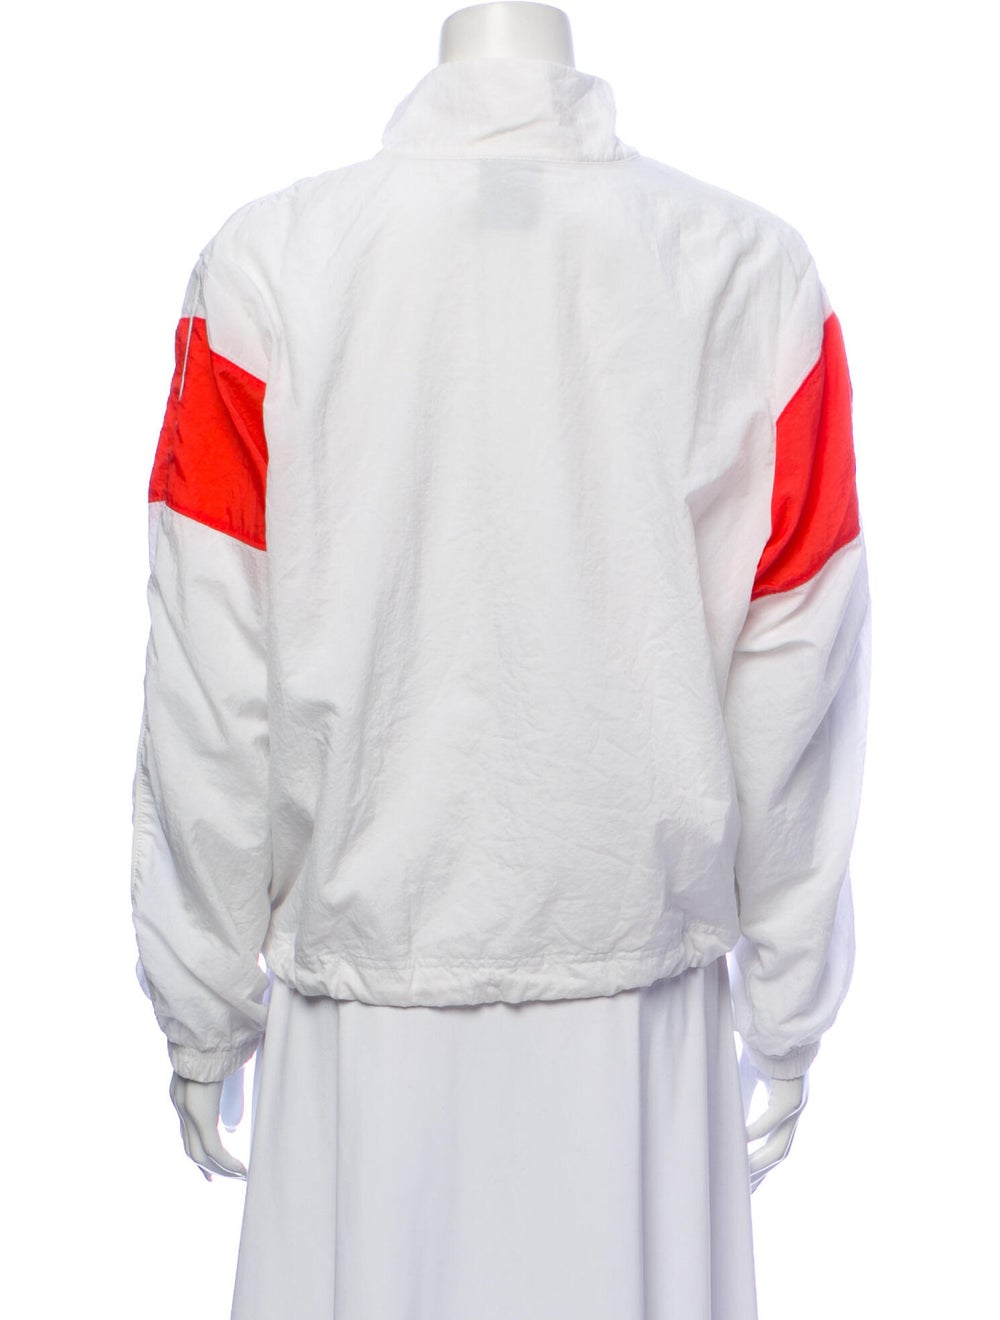 Nike Performance Jacket White - image 3